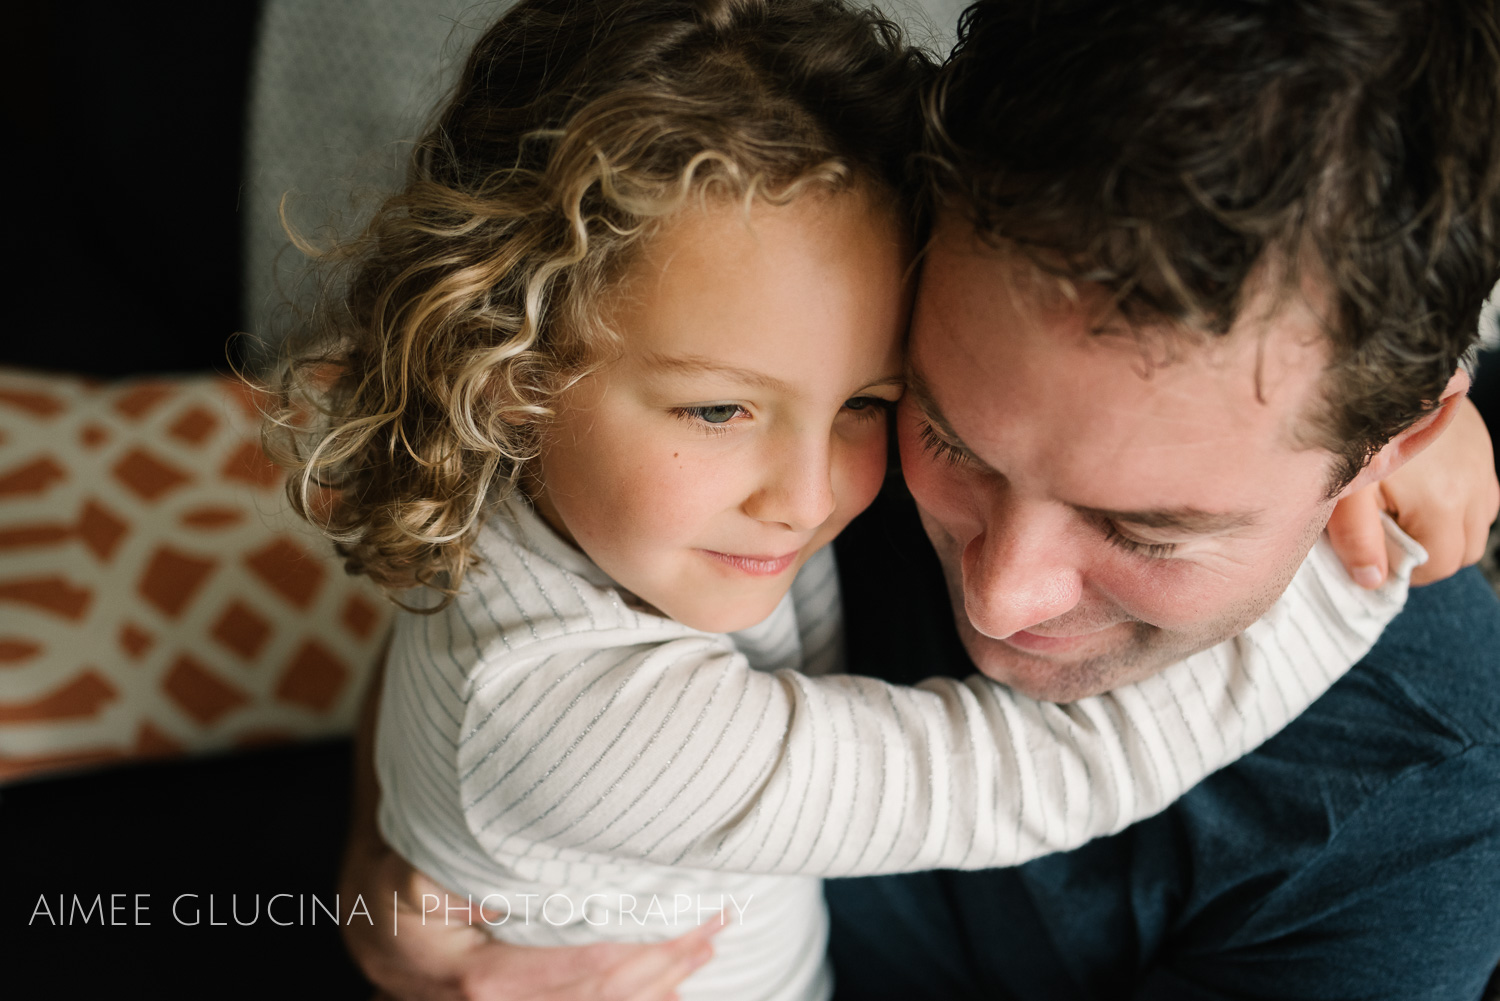 Lifestyle images of Fathers by Aimee Glucina Photography-26.jpg